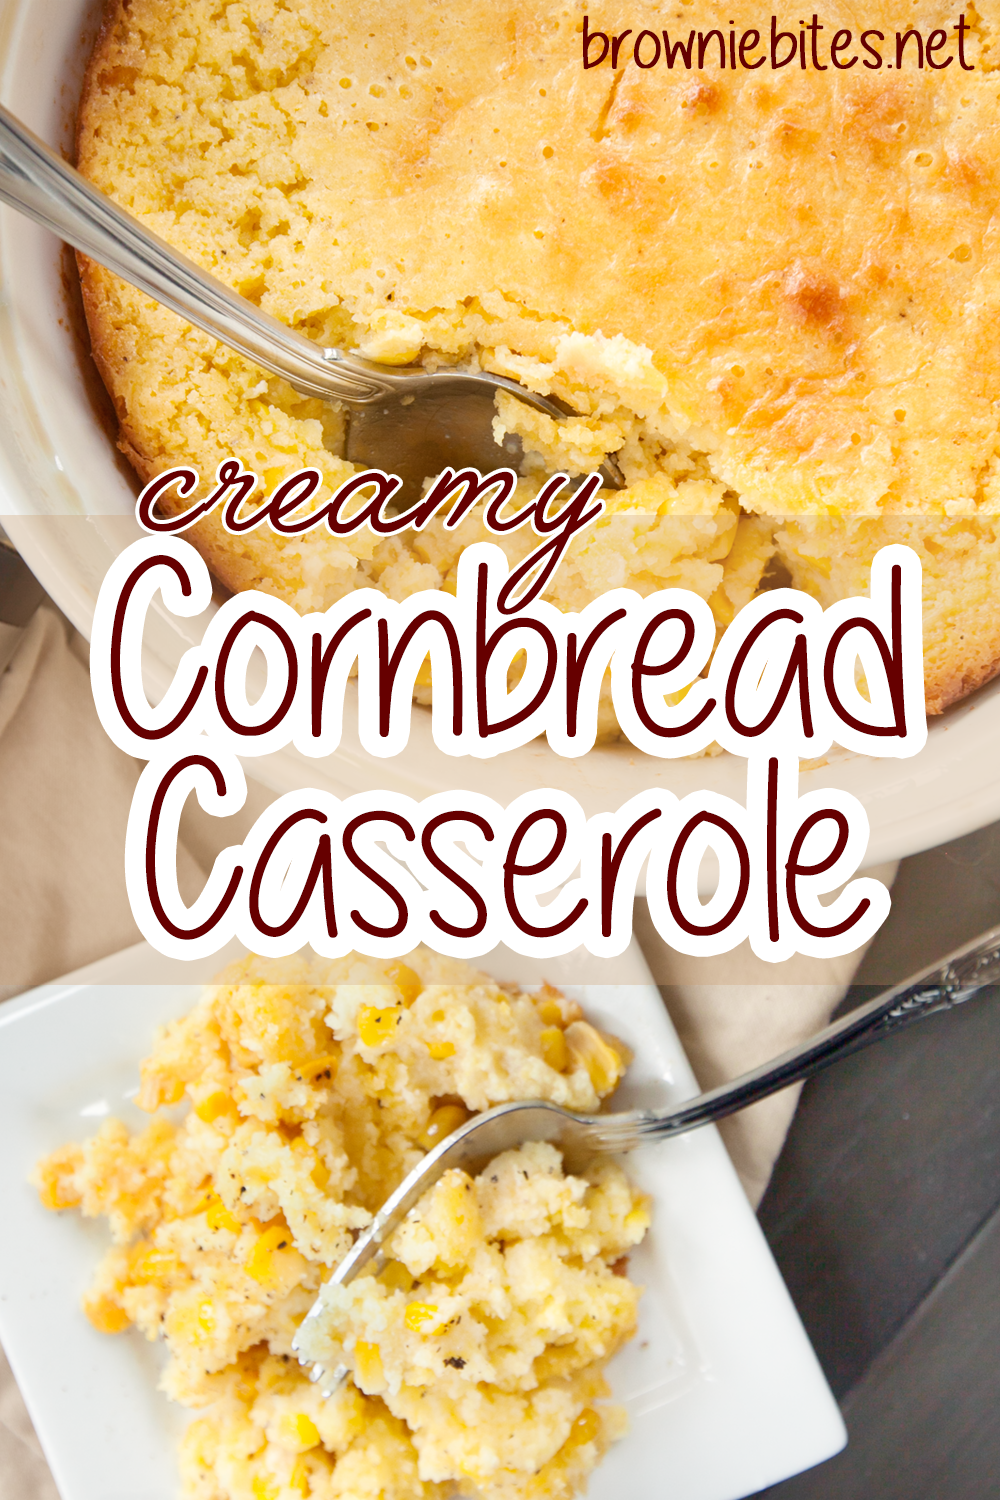 An overhead view of cornbread casserole with text showing the title of the recipe, for Pinterest